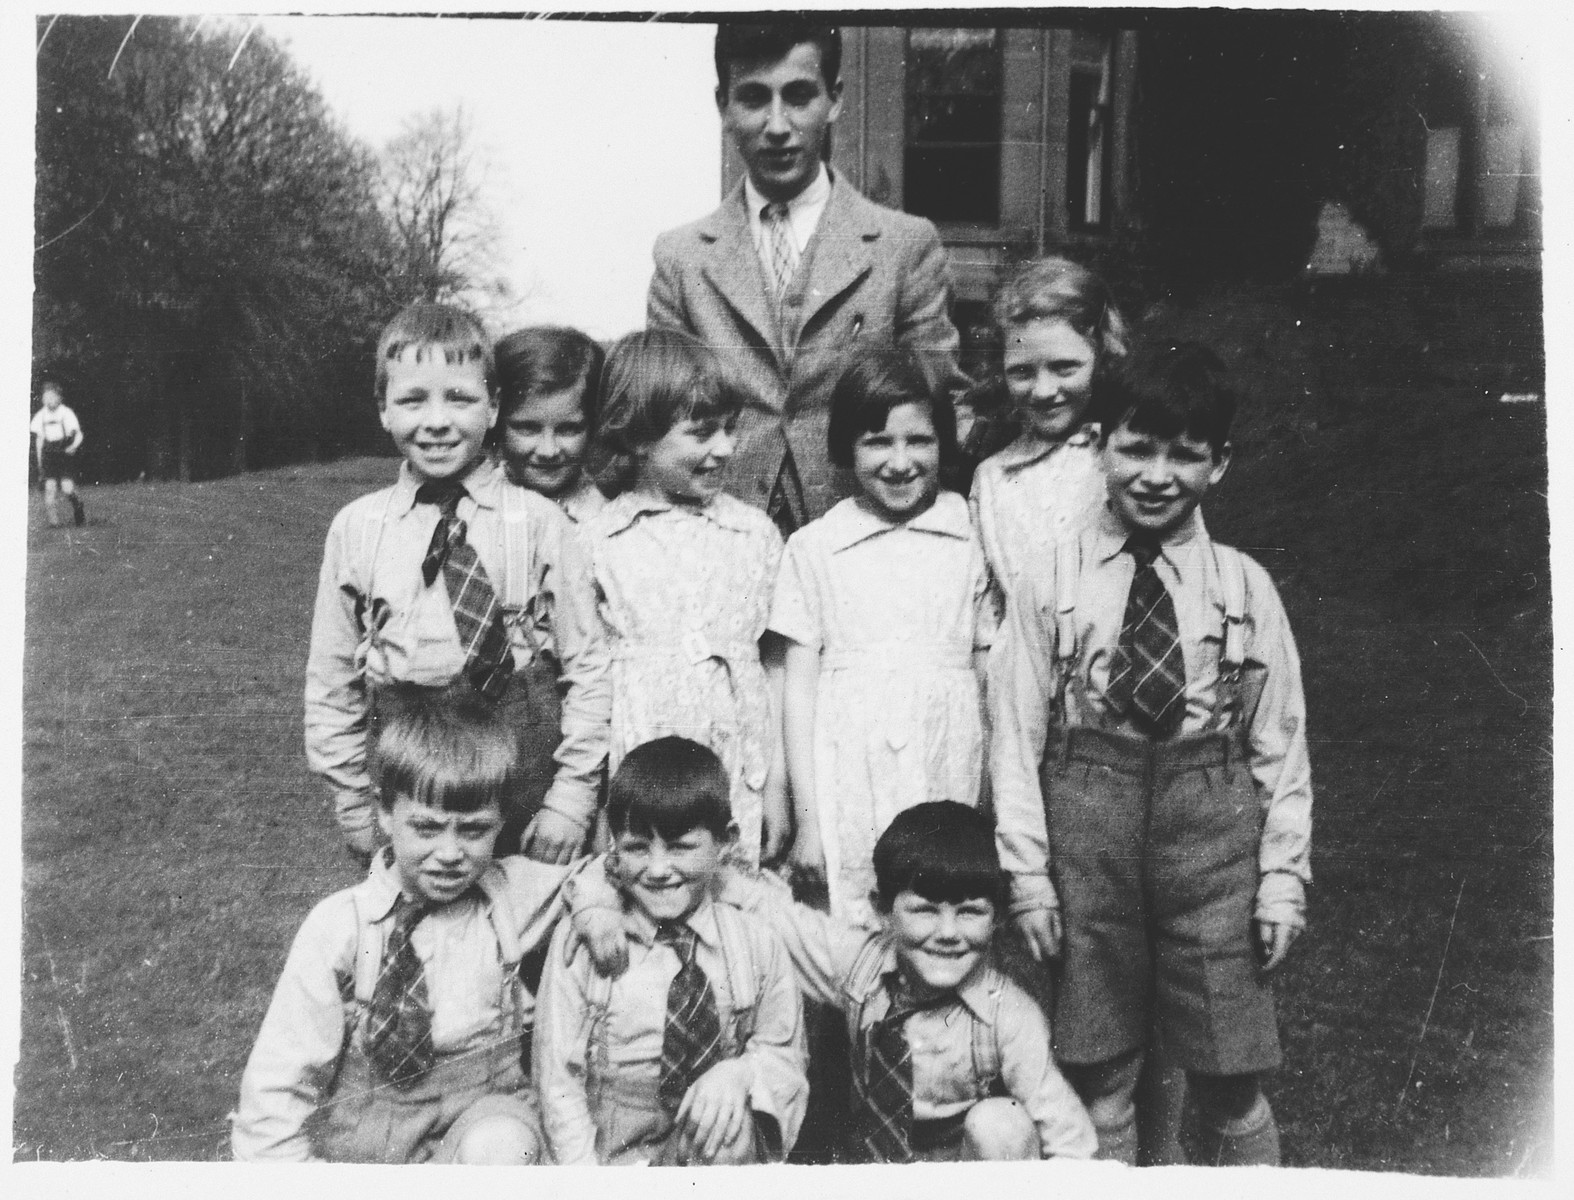 Otto Pushner (at rear) with a group of Scottish children at The Priory, a children's holiday home originally designated  for Edinburgh youngsters who had experienced abuse or stressful home circumstances.  Otto Pushner was born in Vienna.